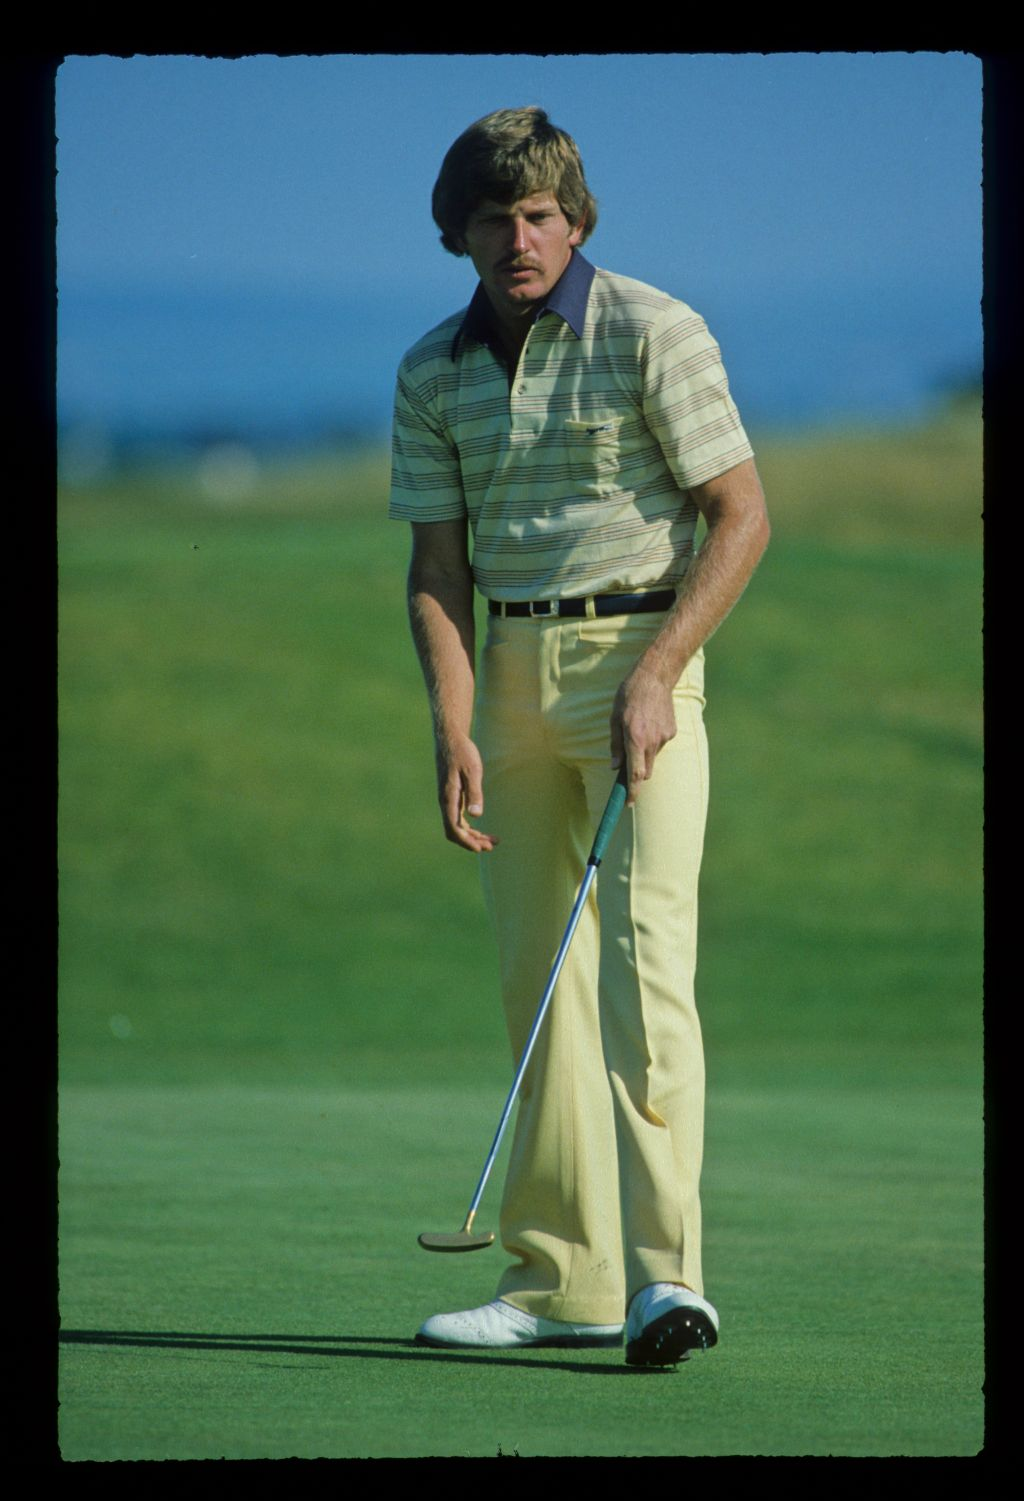 Nick Price with a moustache stepping after a putt on his way to third place during the 1982 Open Championship